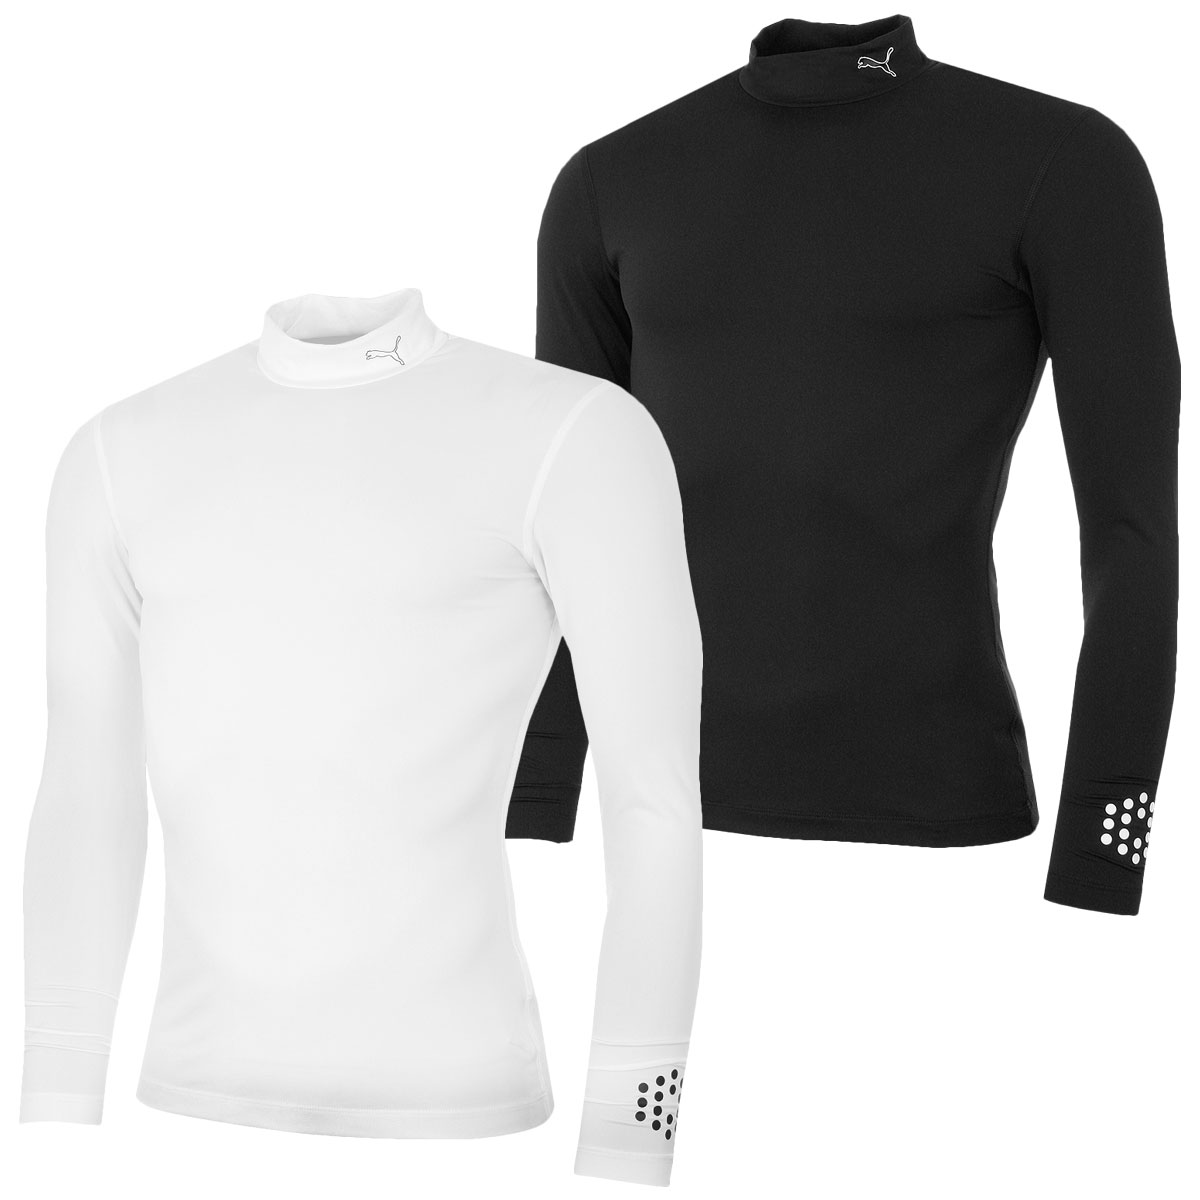 Puma Golf Men's DryCell Baselayer Mock Stretch Long Sleeve Top ...